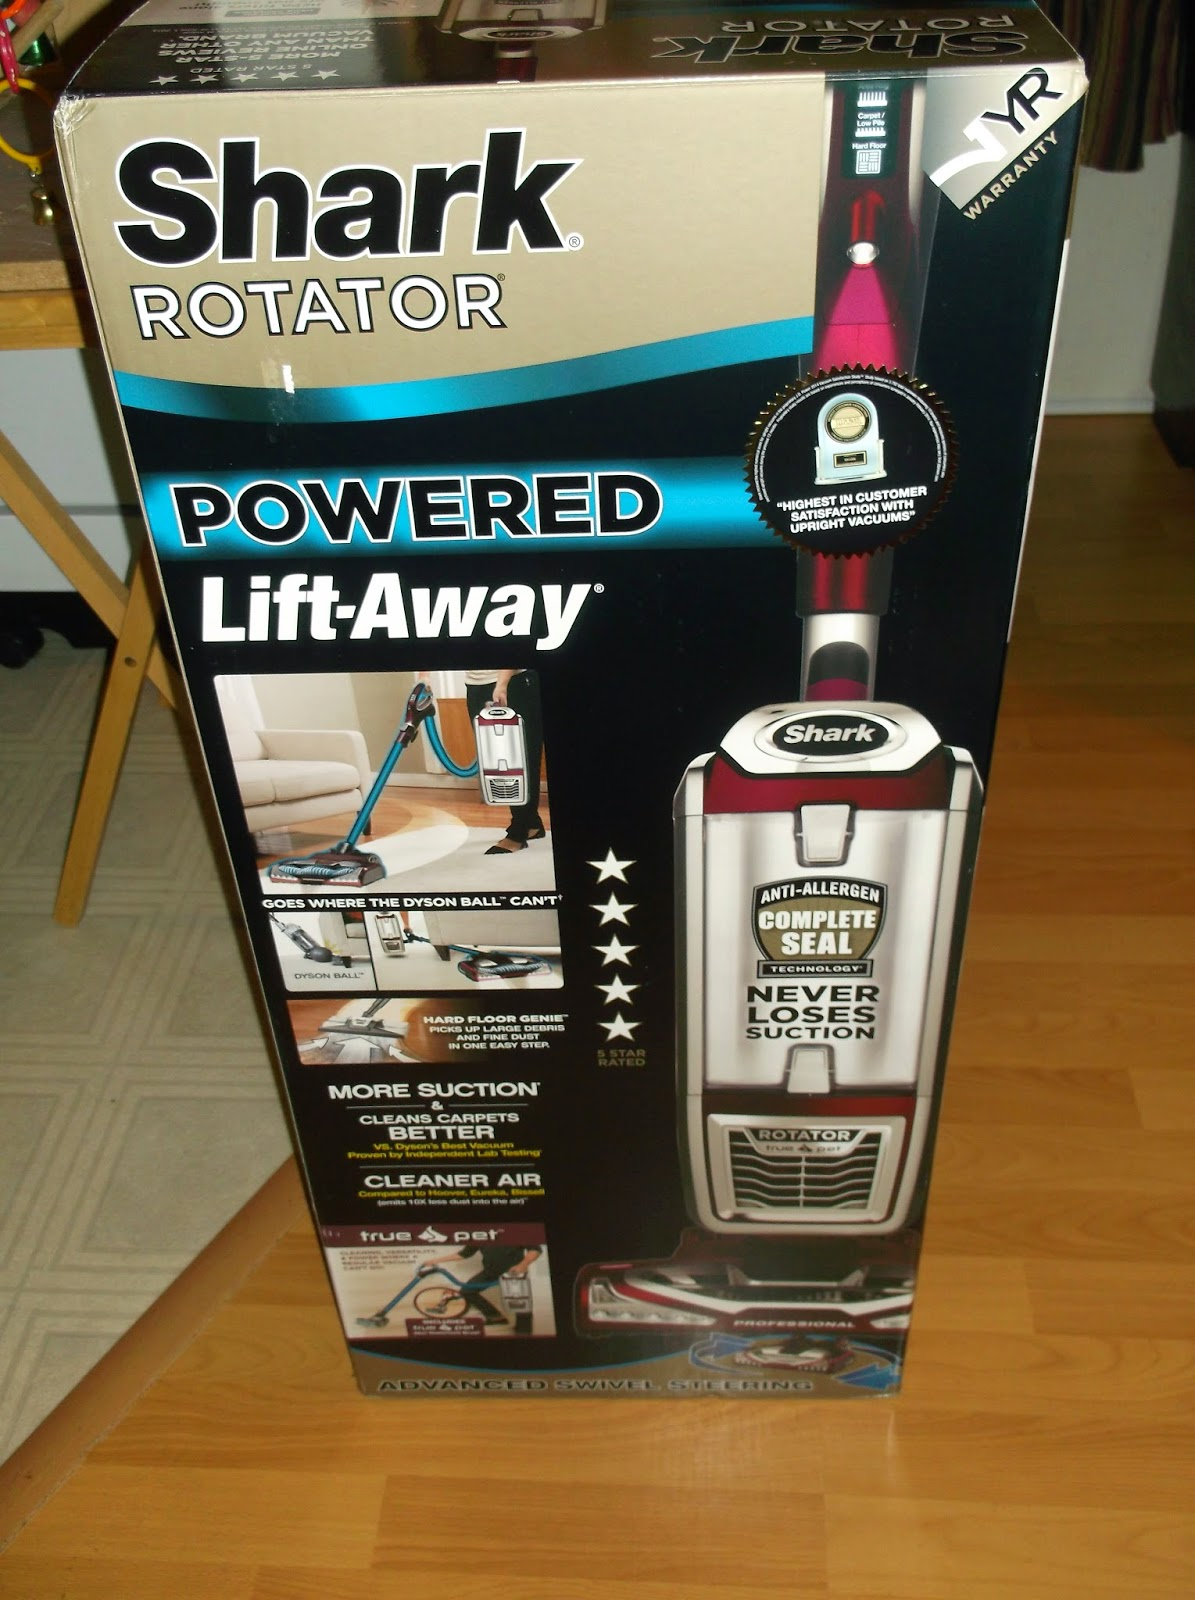 Missys Product Reviews Shark Powered Lift Away